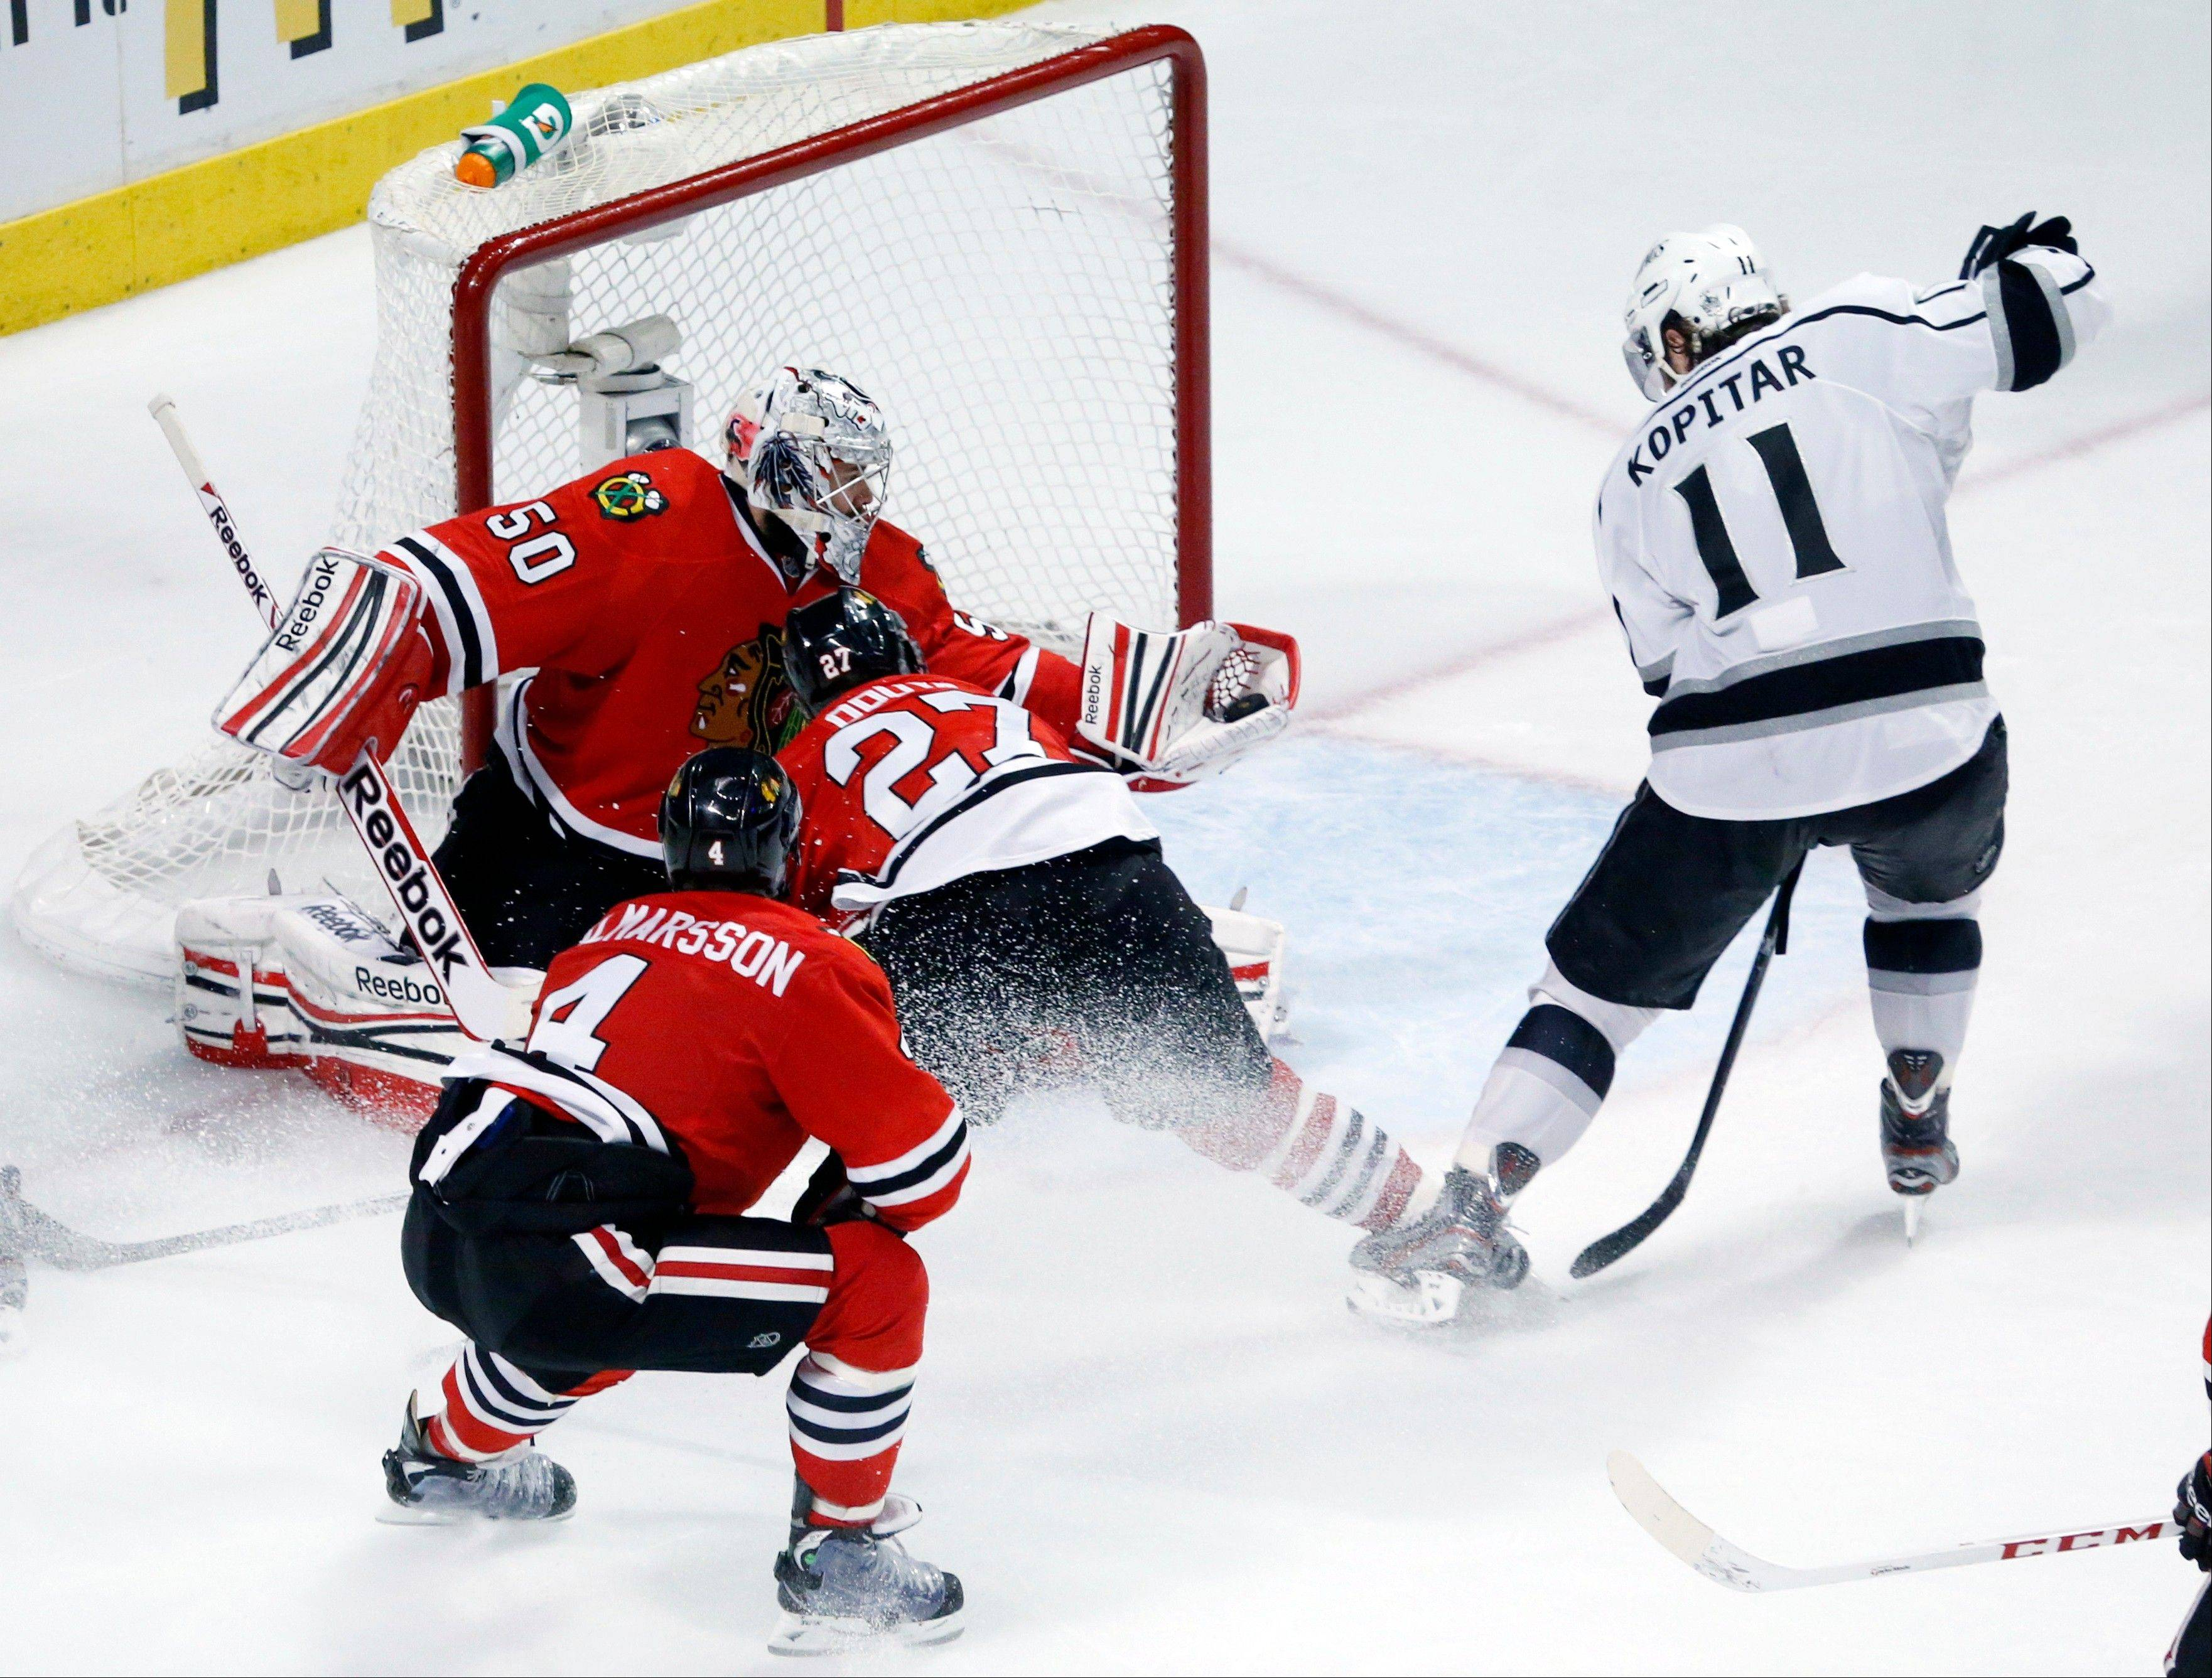 Corey Crawford (50) grabs the puck in front of Los Angeles Kings center Anze Kopitar (11) during the first overtime period in Game 5 of the NHL hockey Stanley Cup playoffs Western Conference finals Saturday, June 8, 2013, in Chicago.